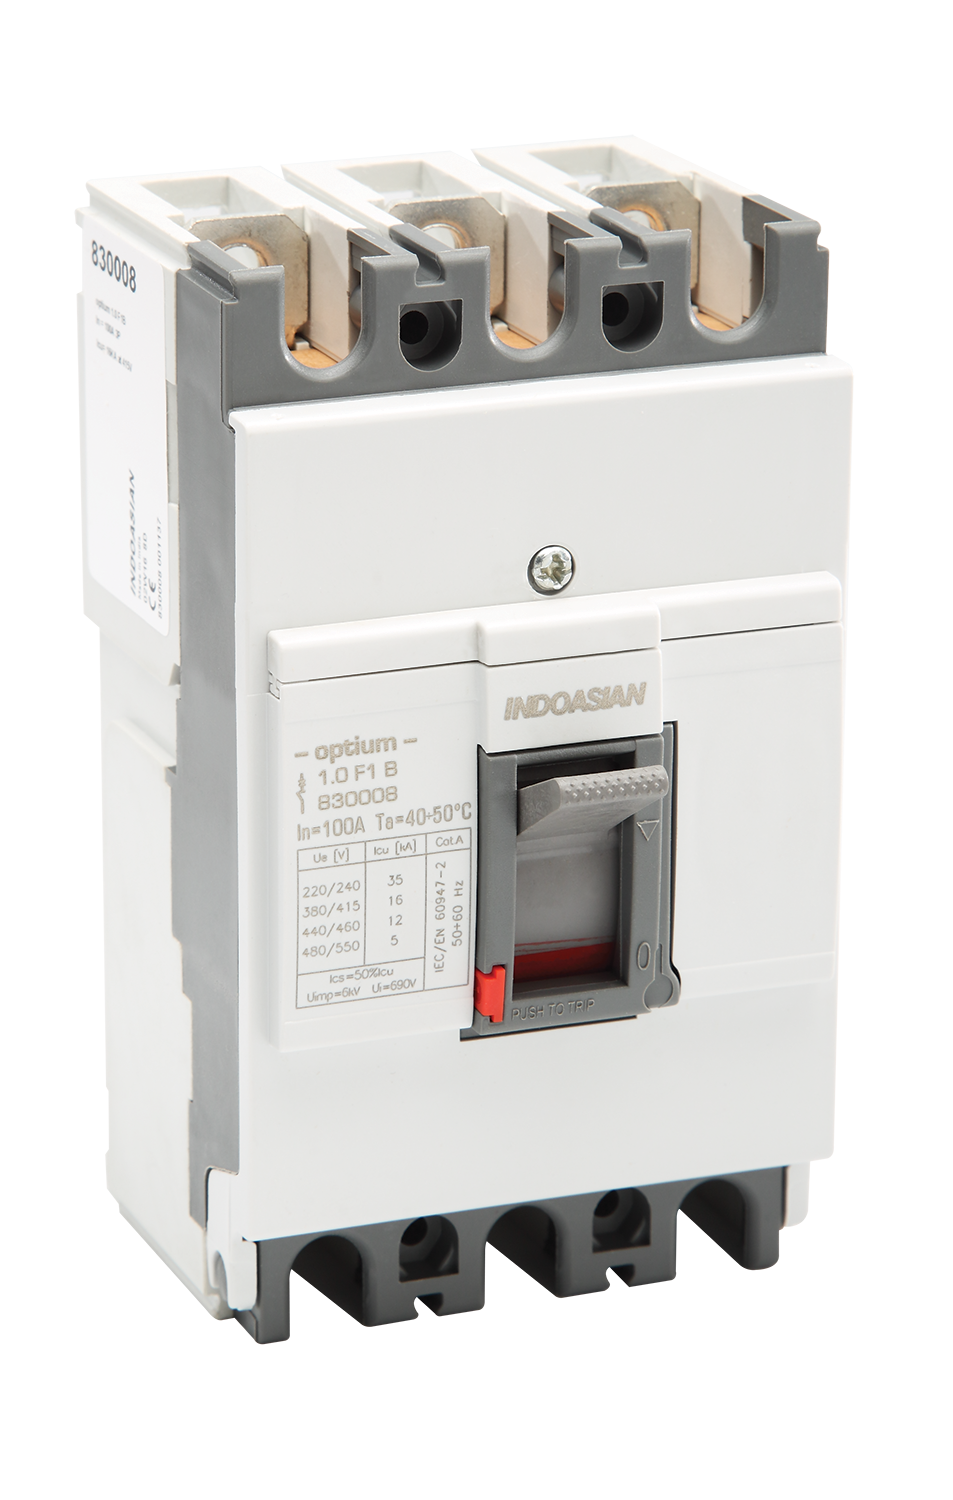 Online Circuit Breaker And Fuses Product Types Information Indo A In Home Optium Mccbs